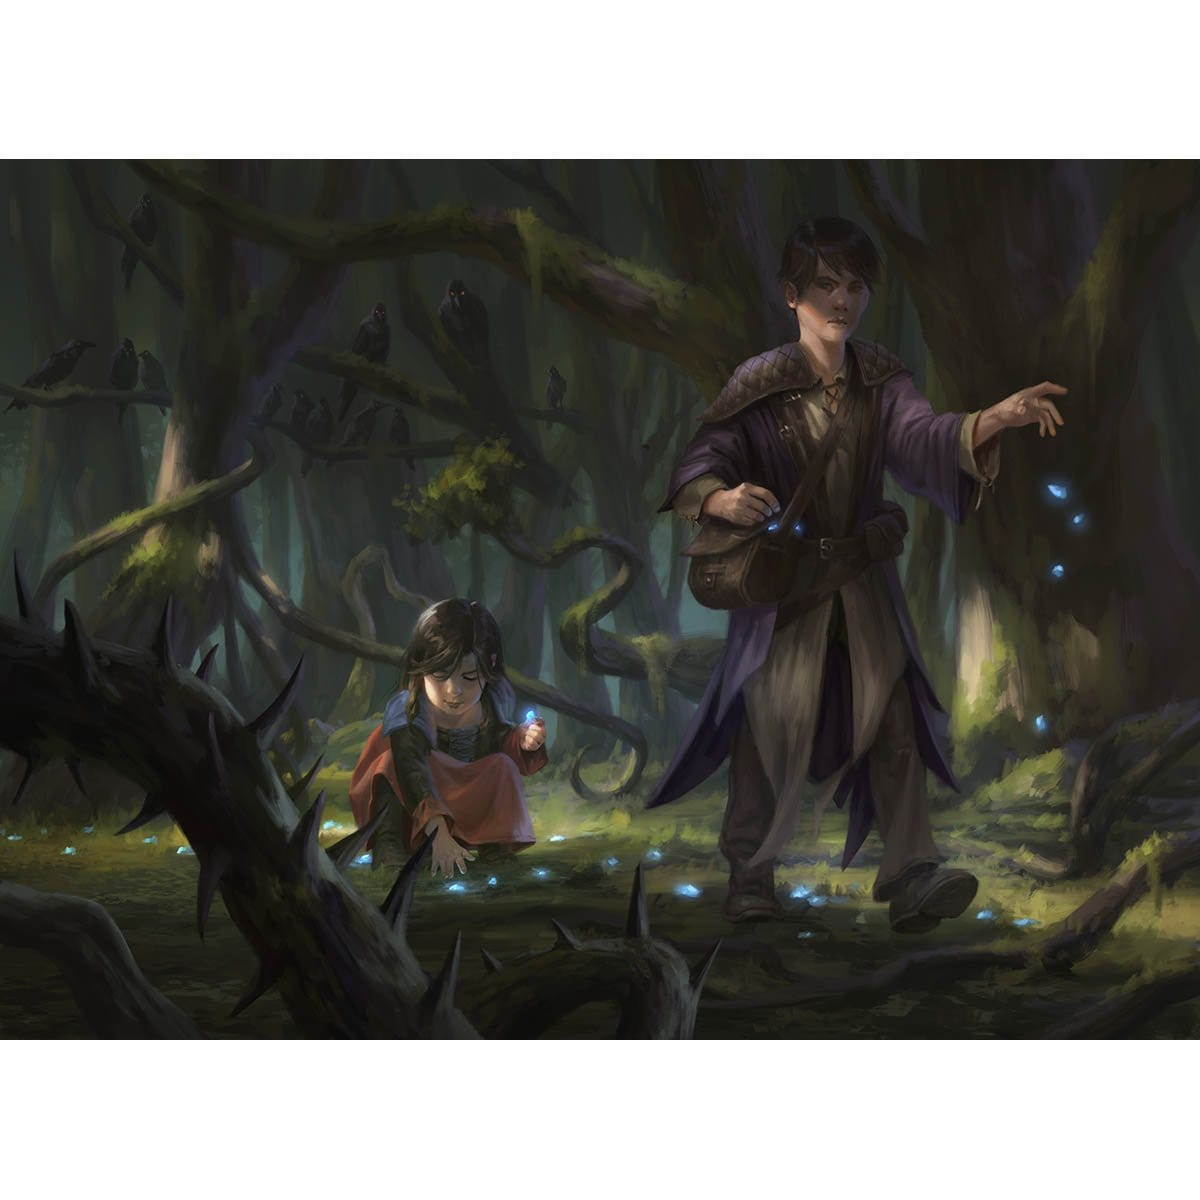 Trail of Crumbs Print - Print - Original Magic Art - Accessories for Magic the Gathering and other card games